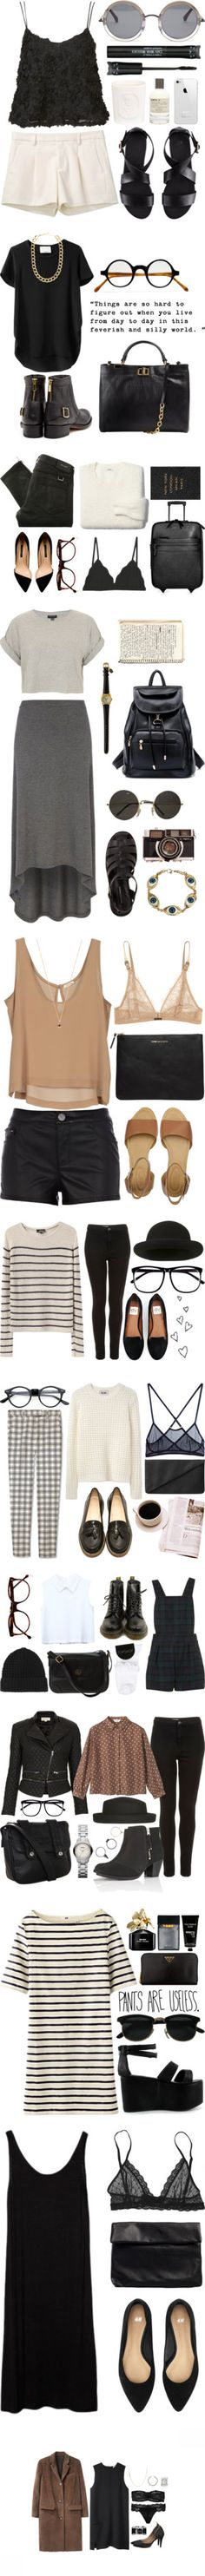 """OUTFITS3"" by sleepyhead1 ❤ liked on Polyvore"